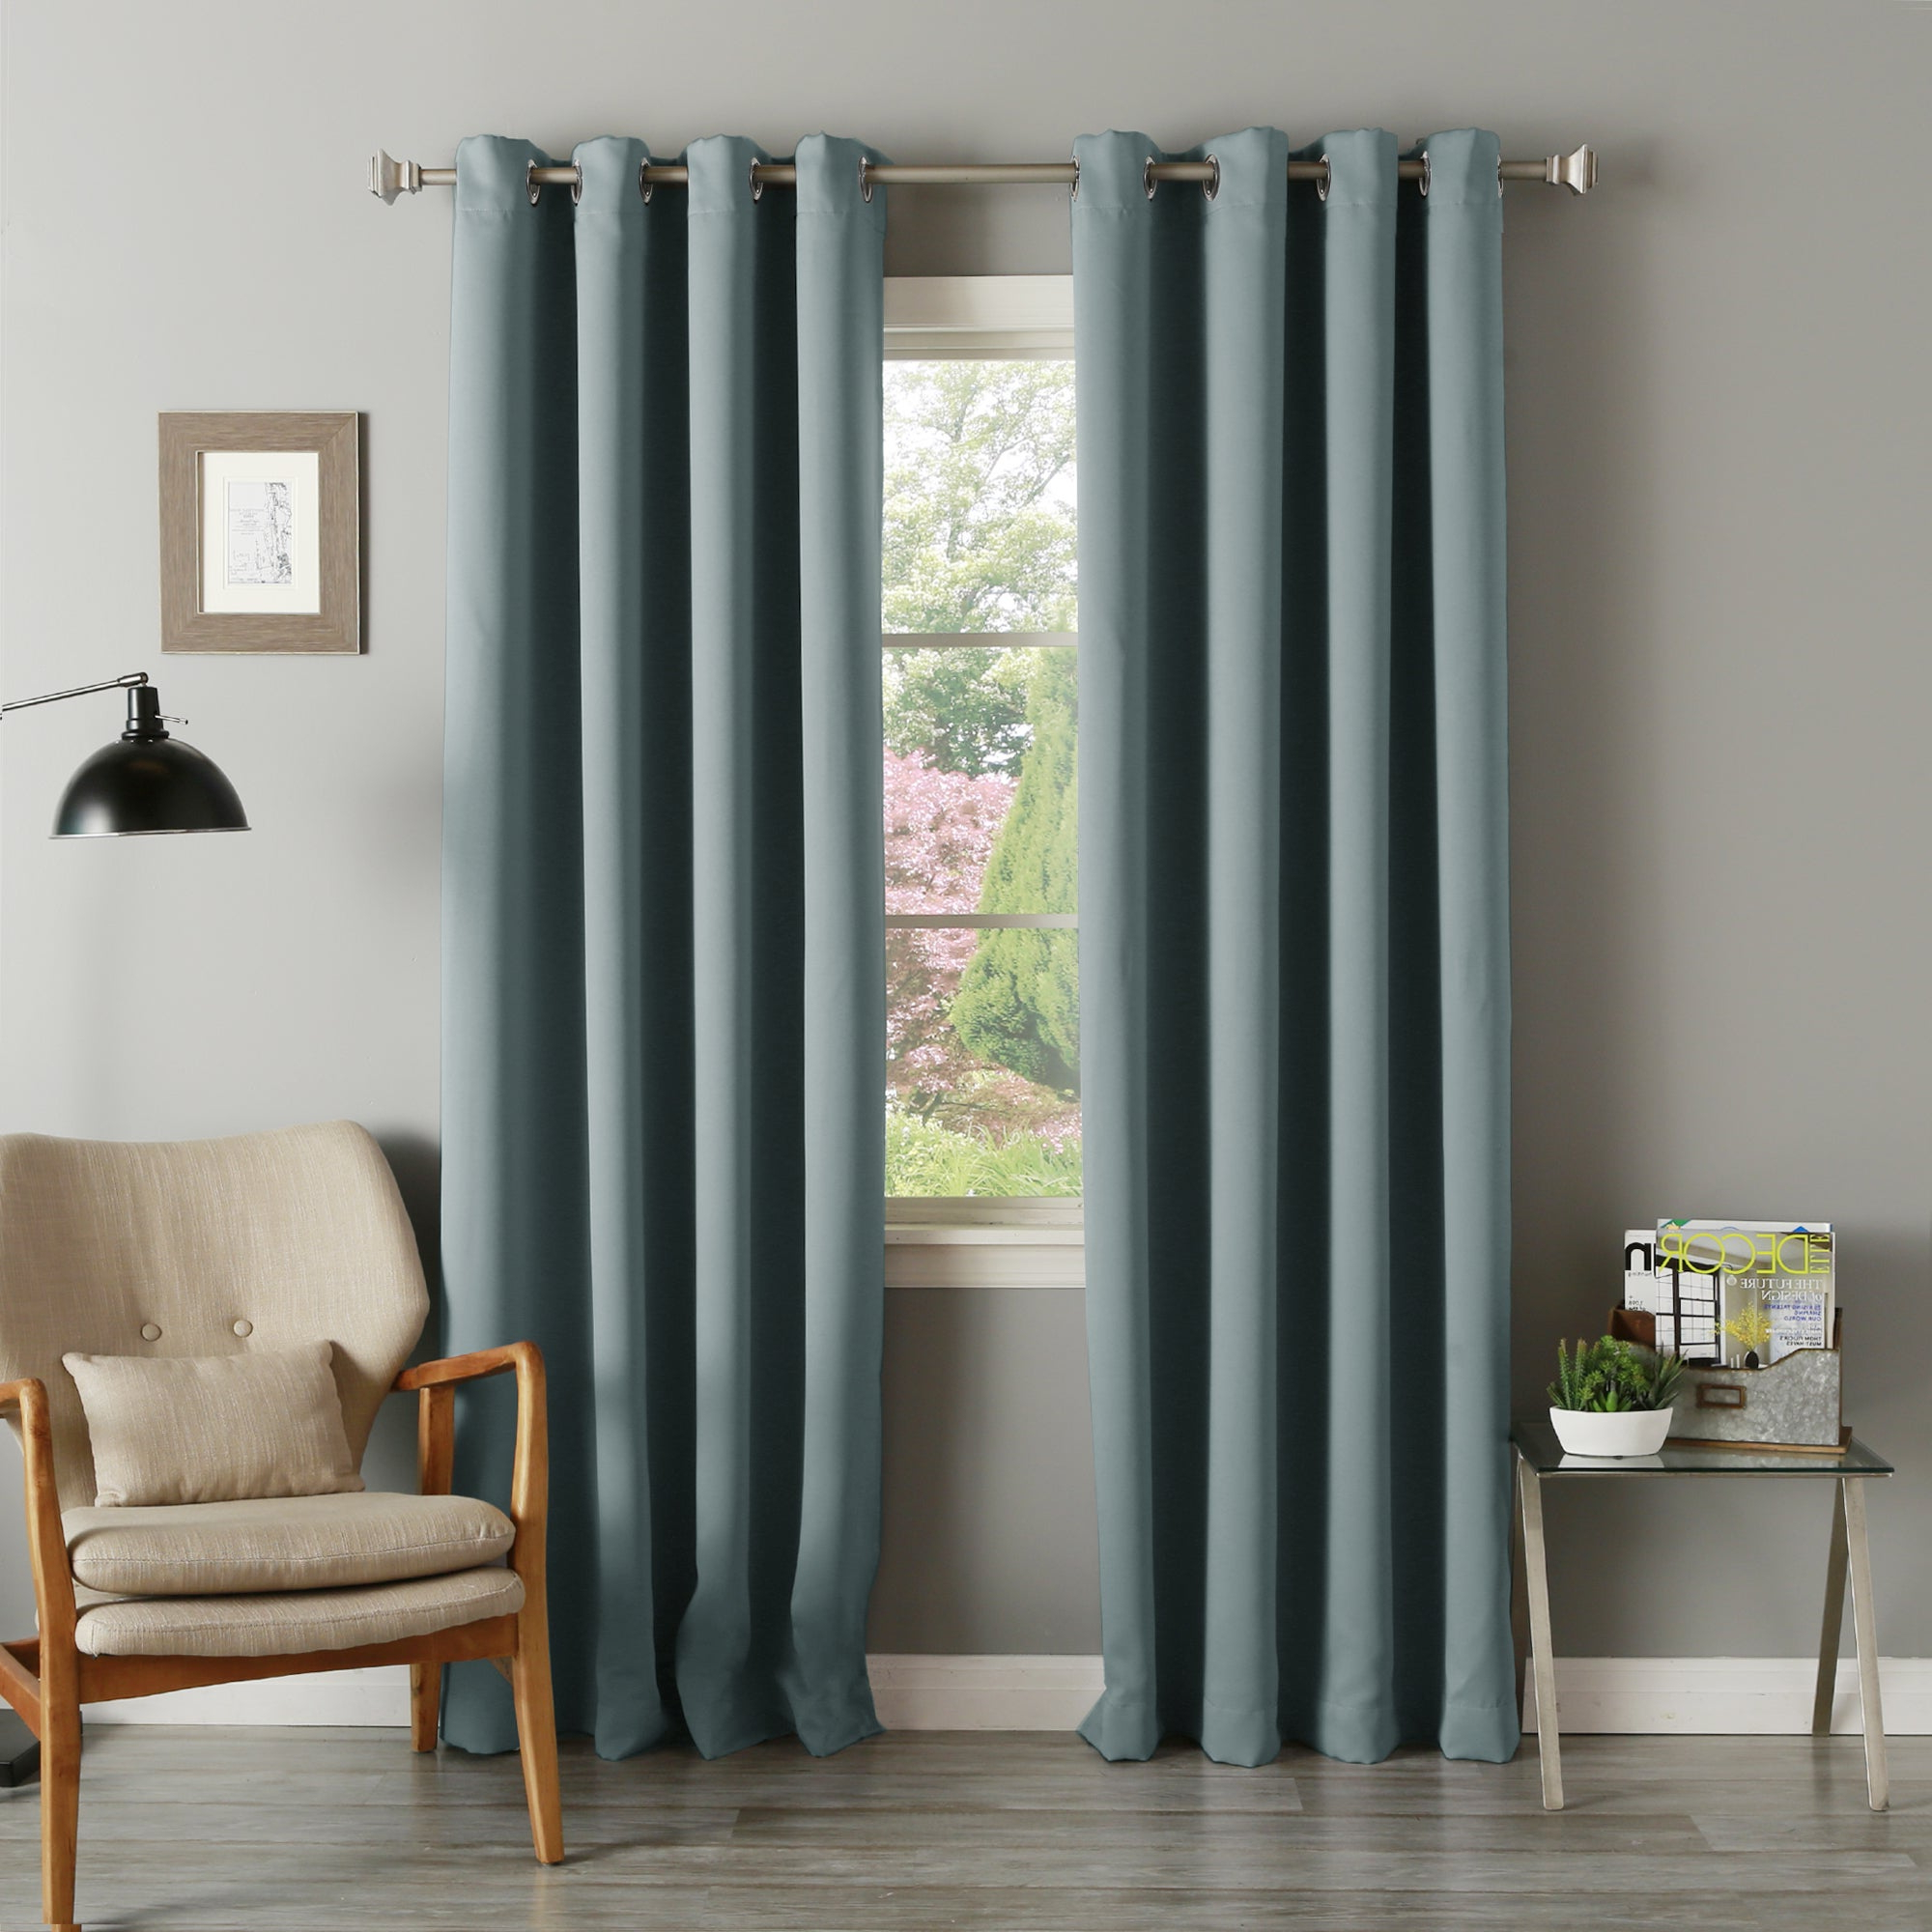 Popular Silvertone Grommet Thermal Insulated Blackout Curtain Panel Pairs In Aurora Home Silvertone Grommet Thermal Insulated Blackout Curtain Panel Pair (View 2 of 20)